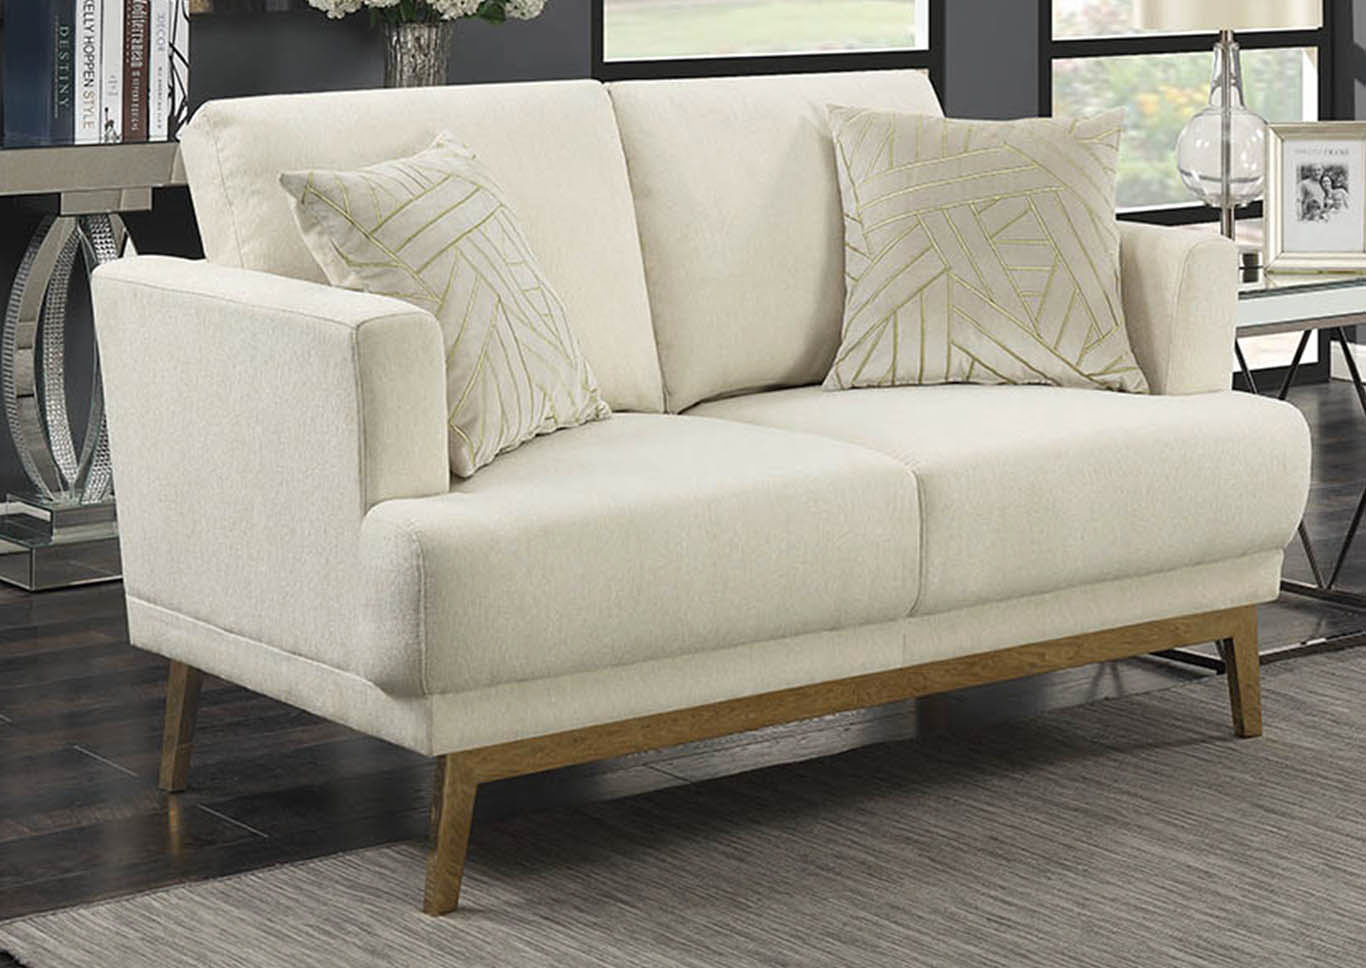 Beige Upholstered Loveseat,Coaster Furniture